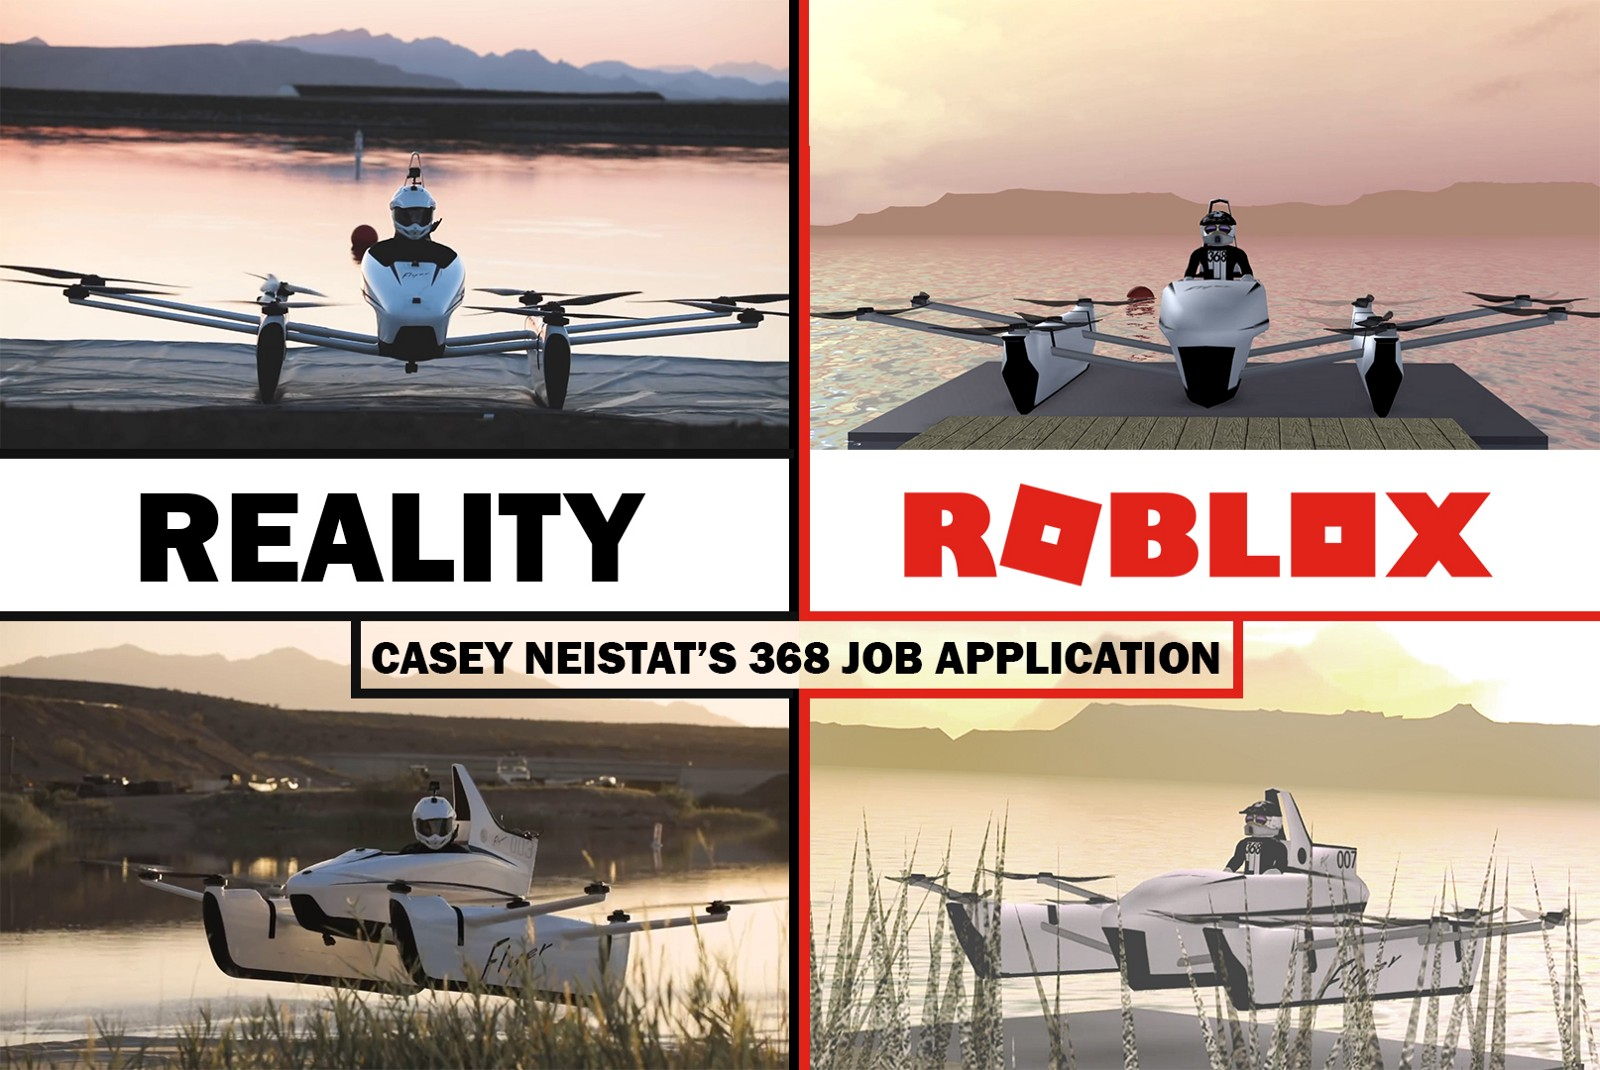 How I Applied To The Casey Neistats Job Position Using Roblox And Vr